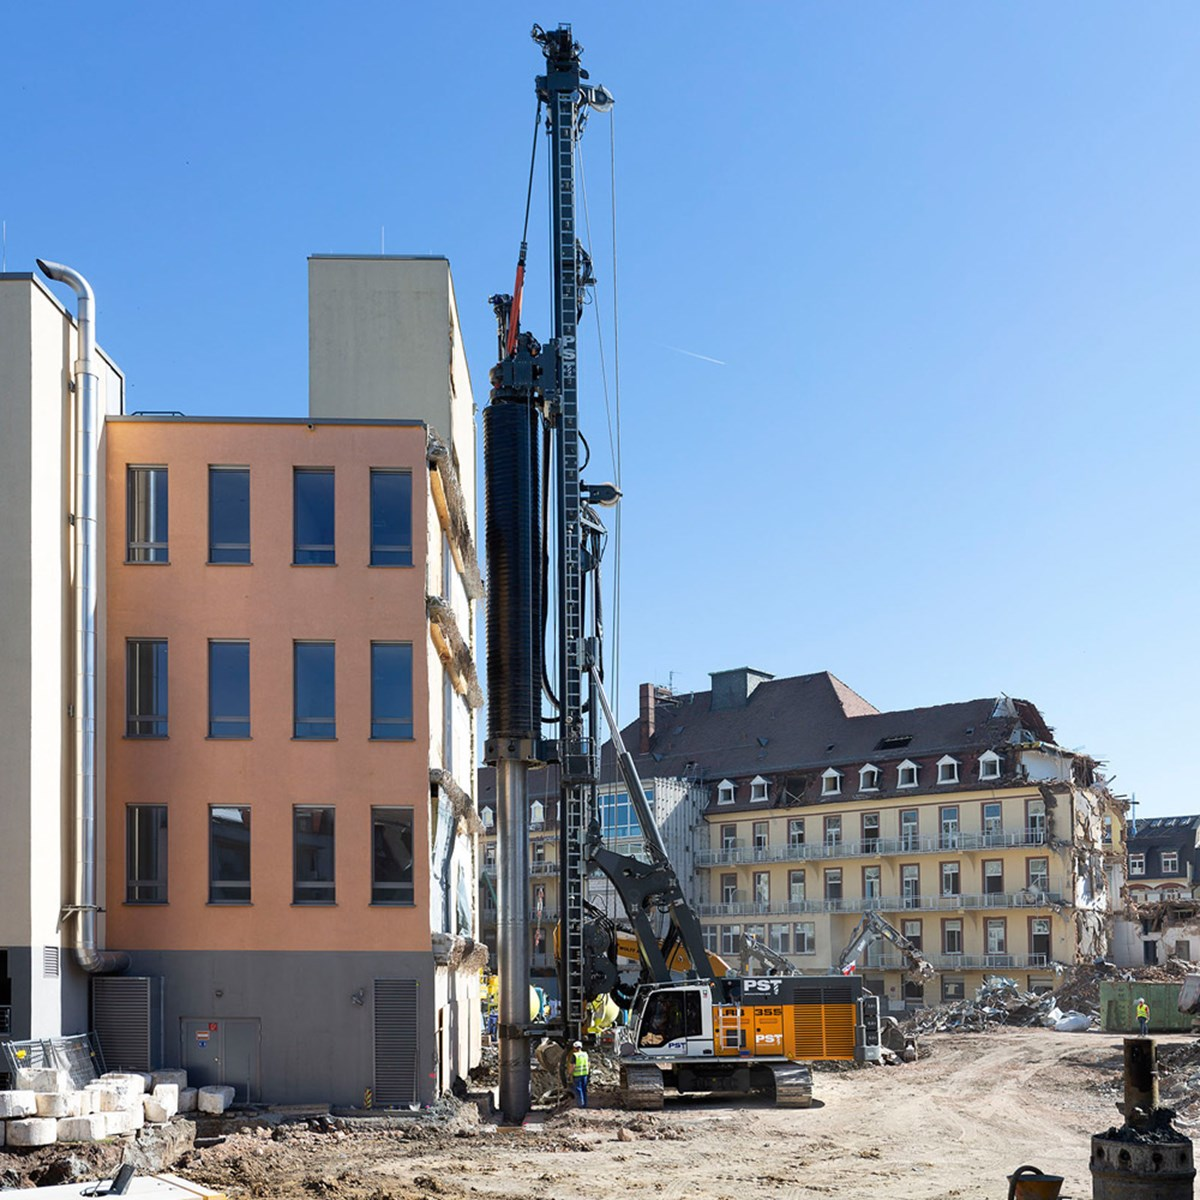 LRB 355 Piling and drilling rig - Liebherr